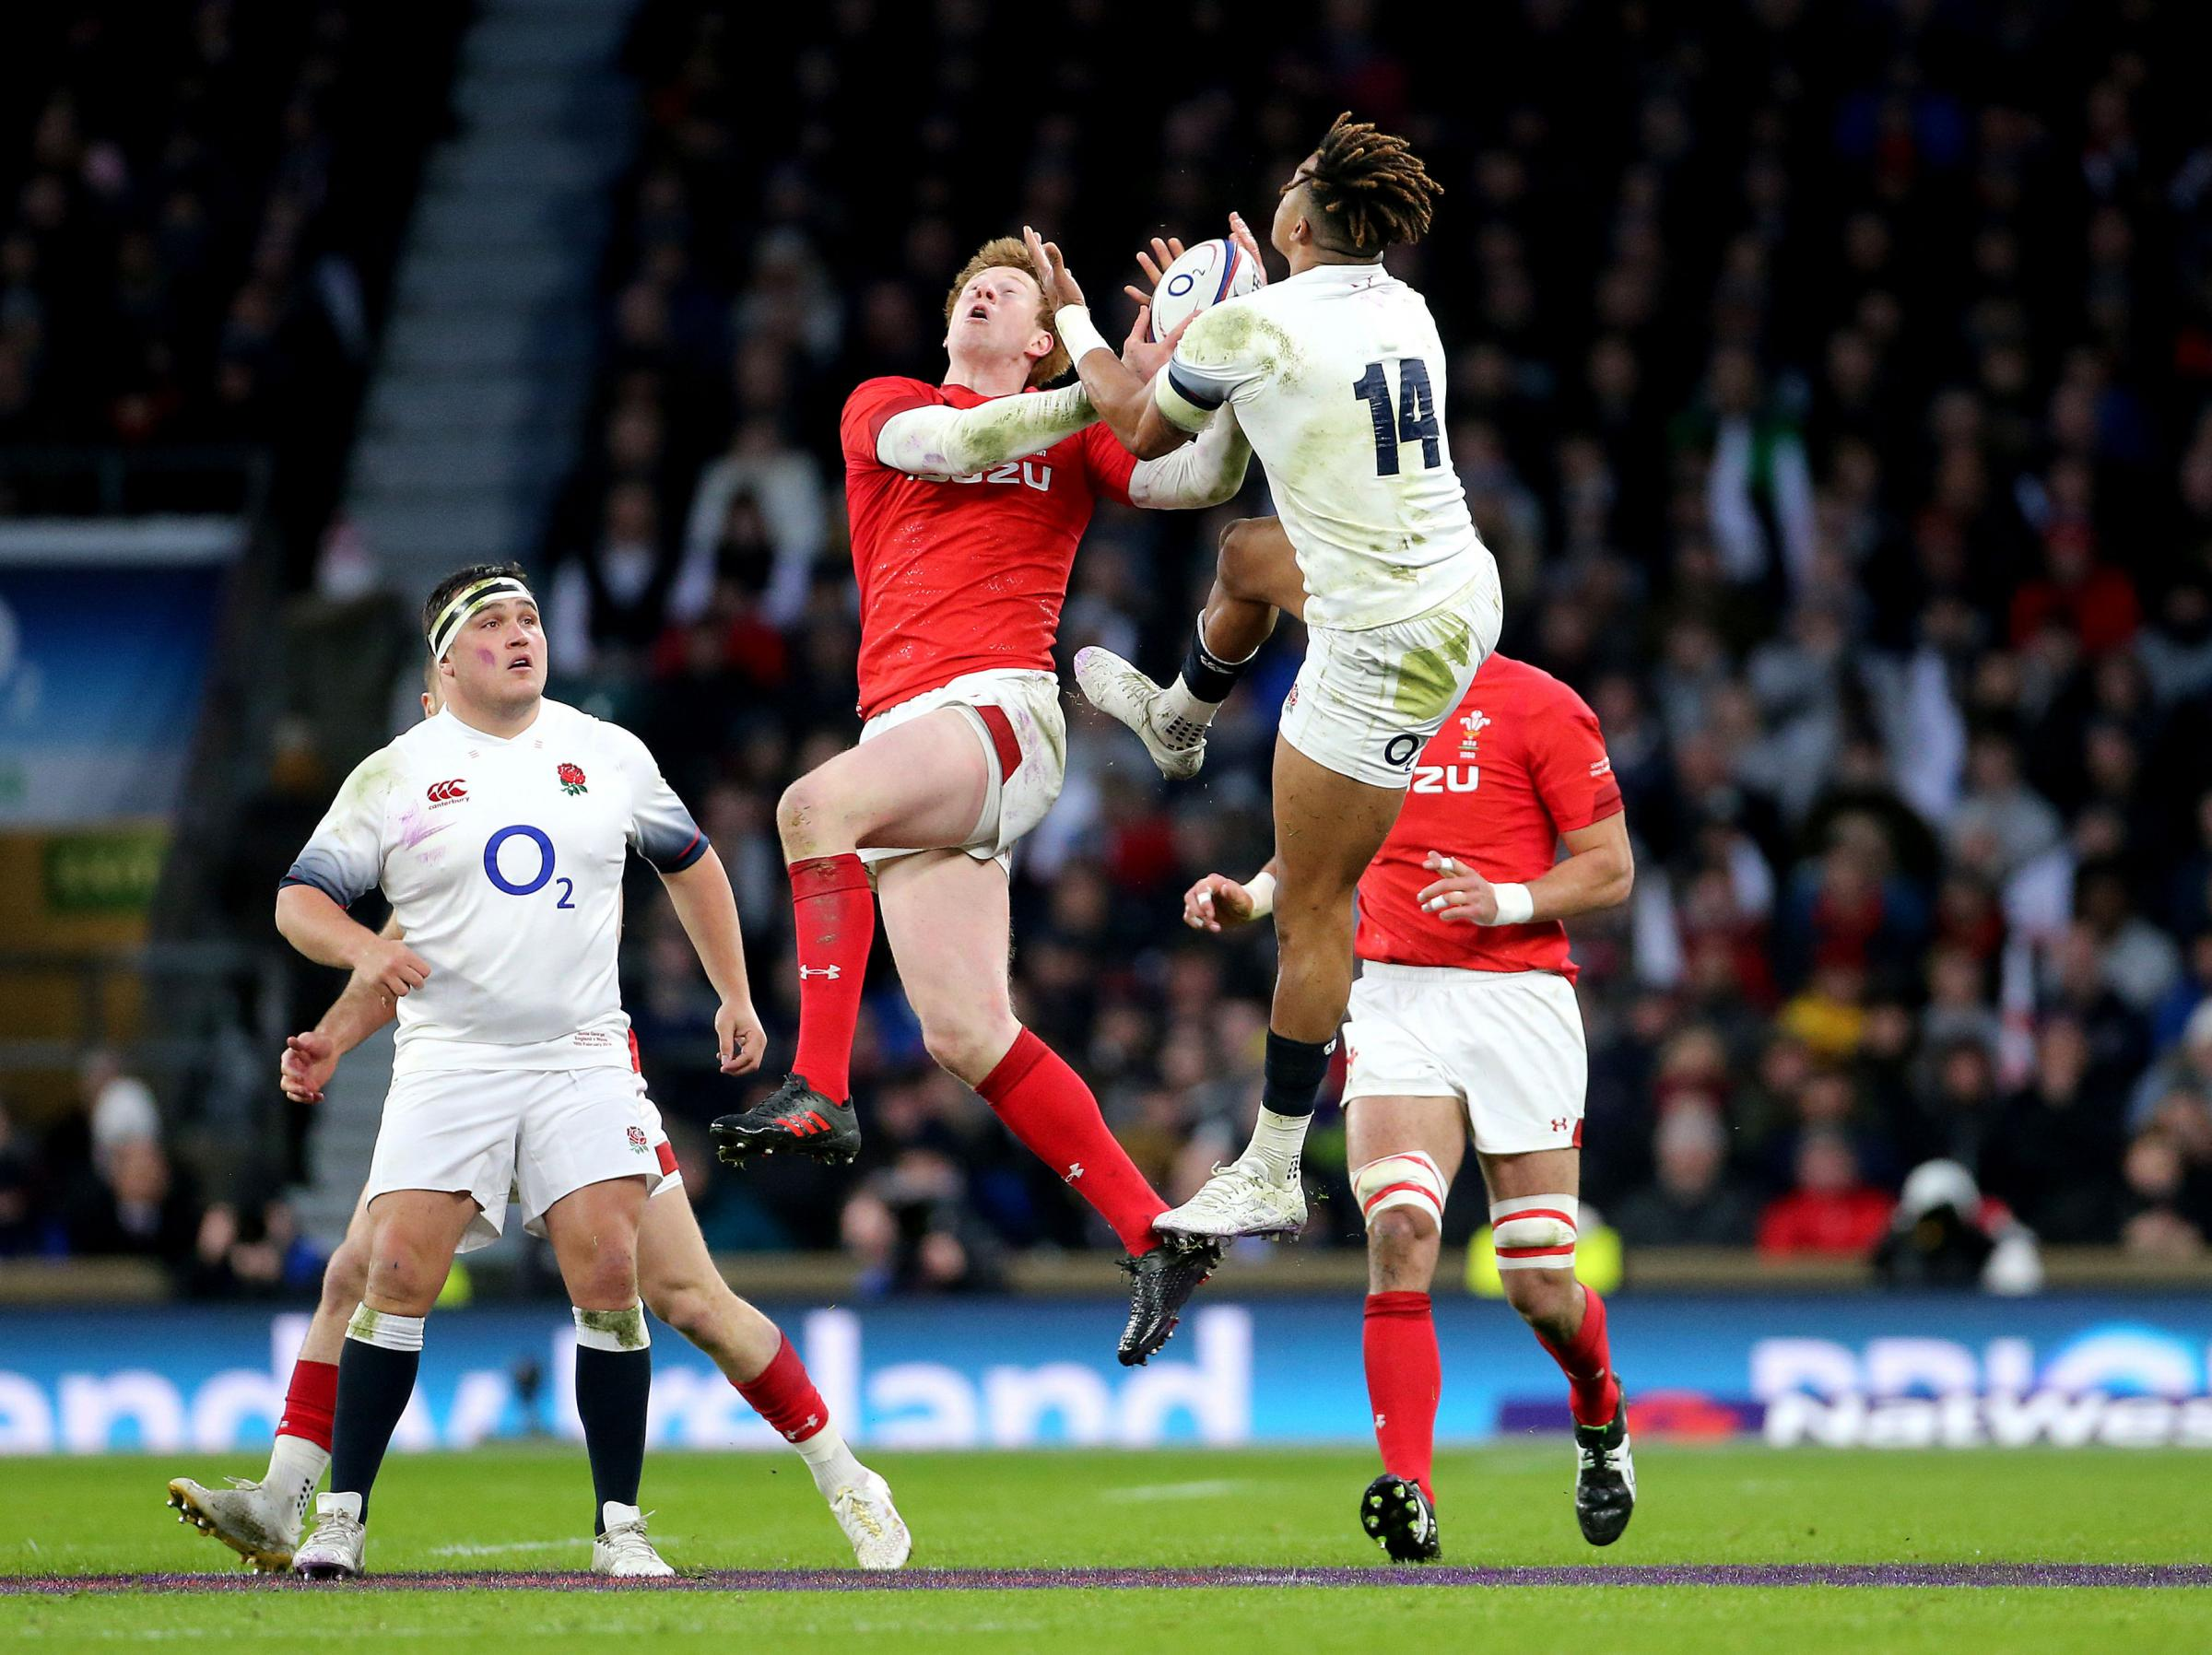 SECOND BEST: Rhys Patchell is beaten to the ball by Anthony Watson as Wales were beaten in the aerial battle